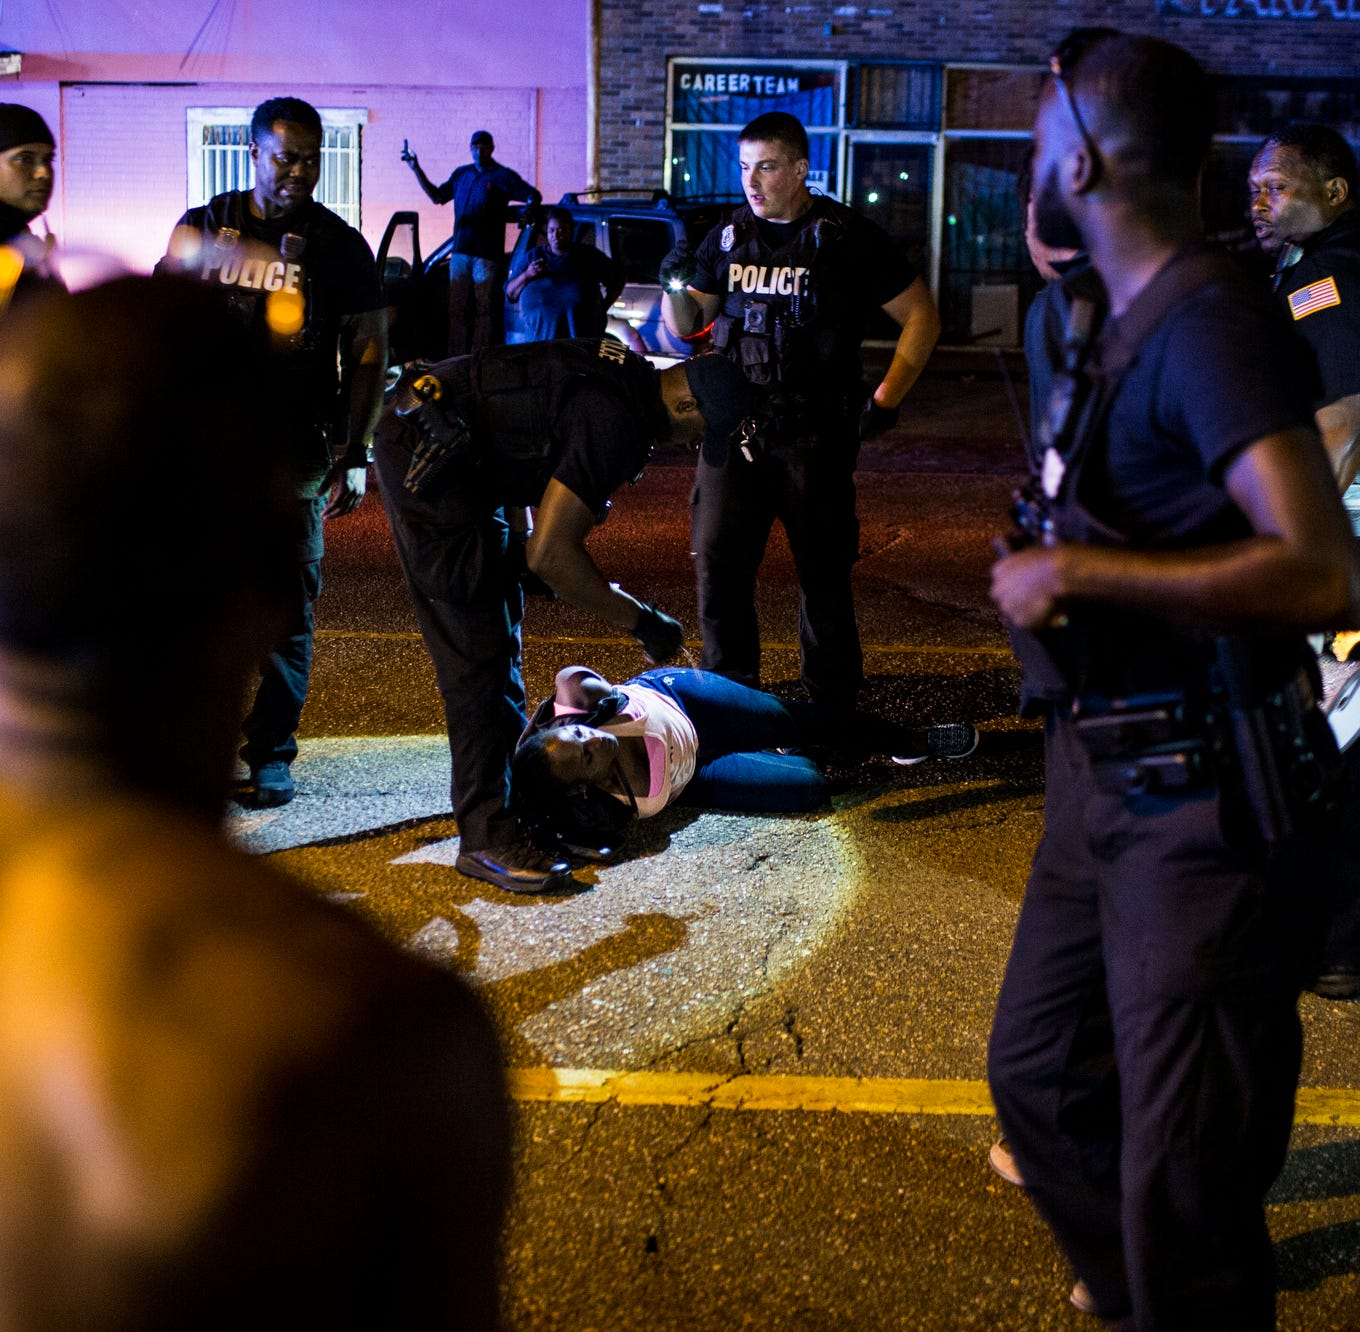 Activists say Memphis police were too aggressive toward protesters during arrests